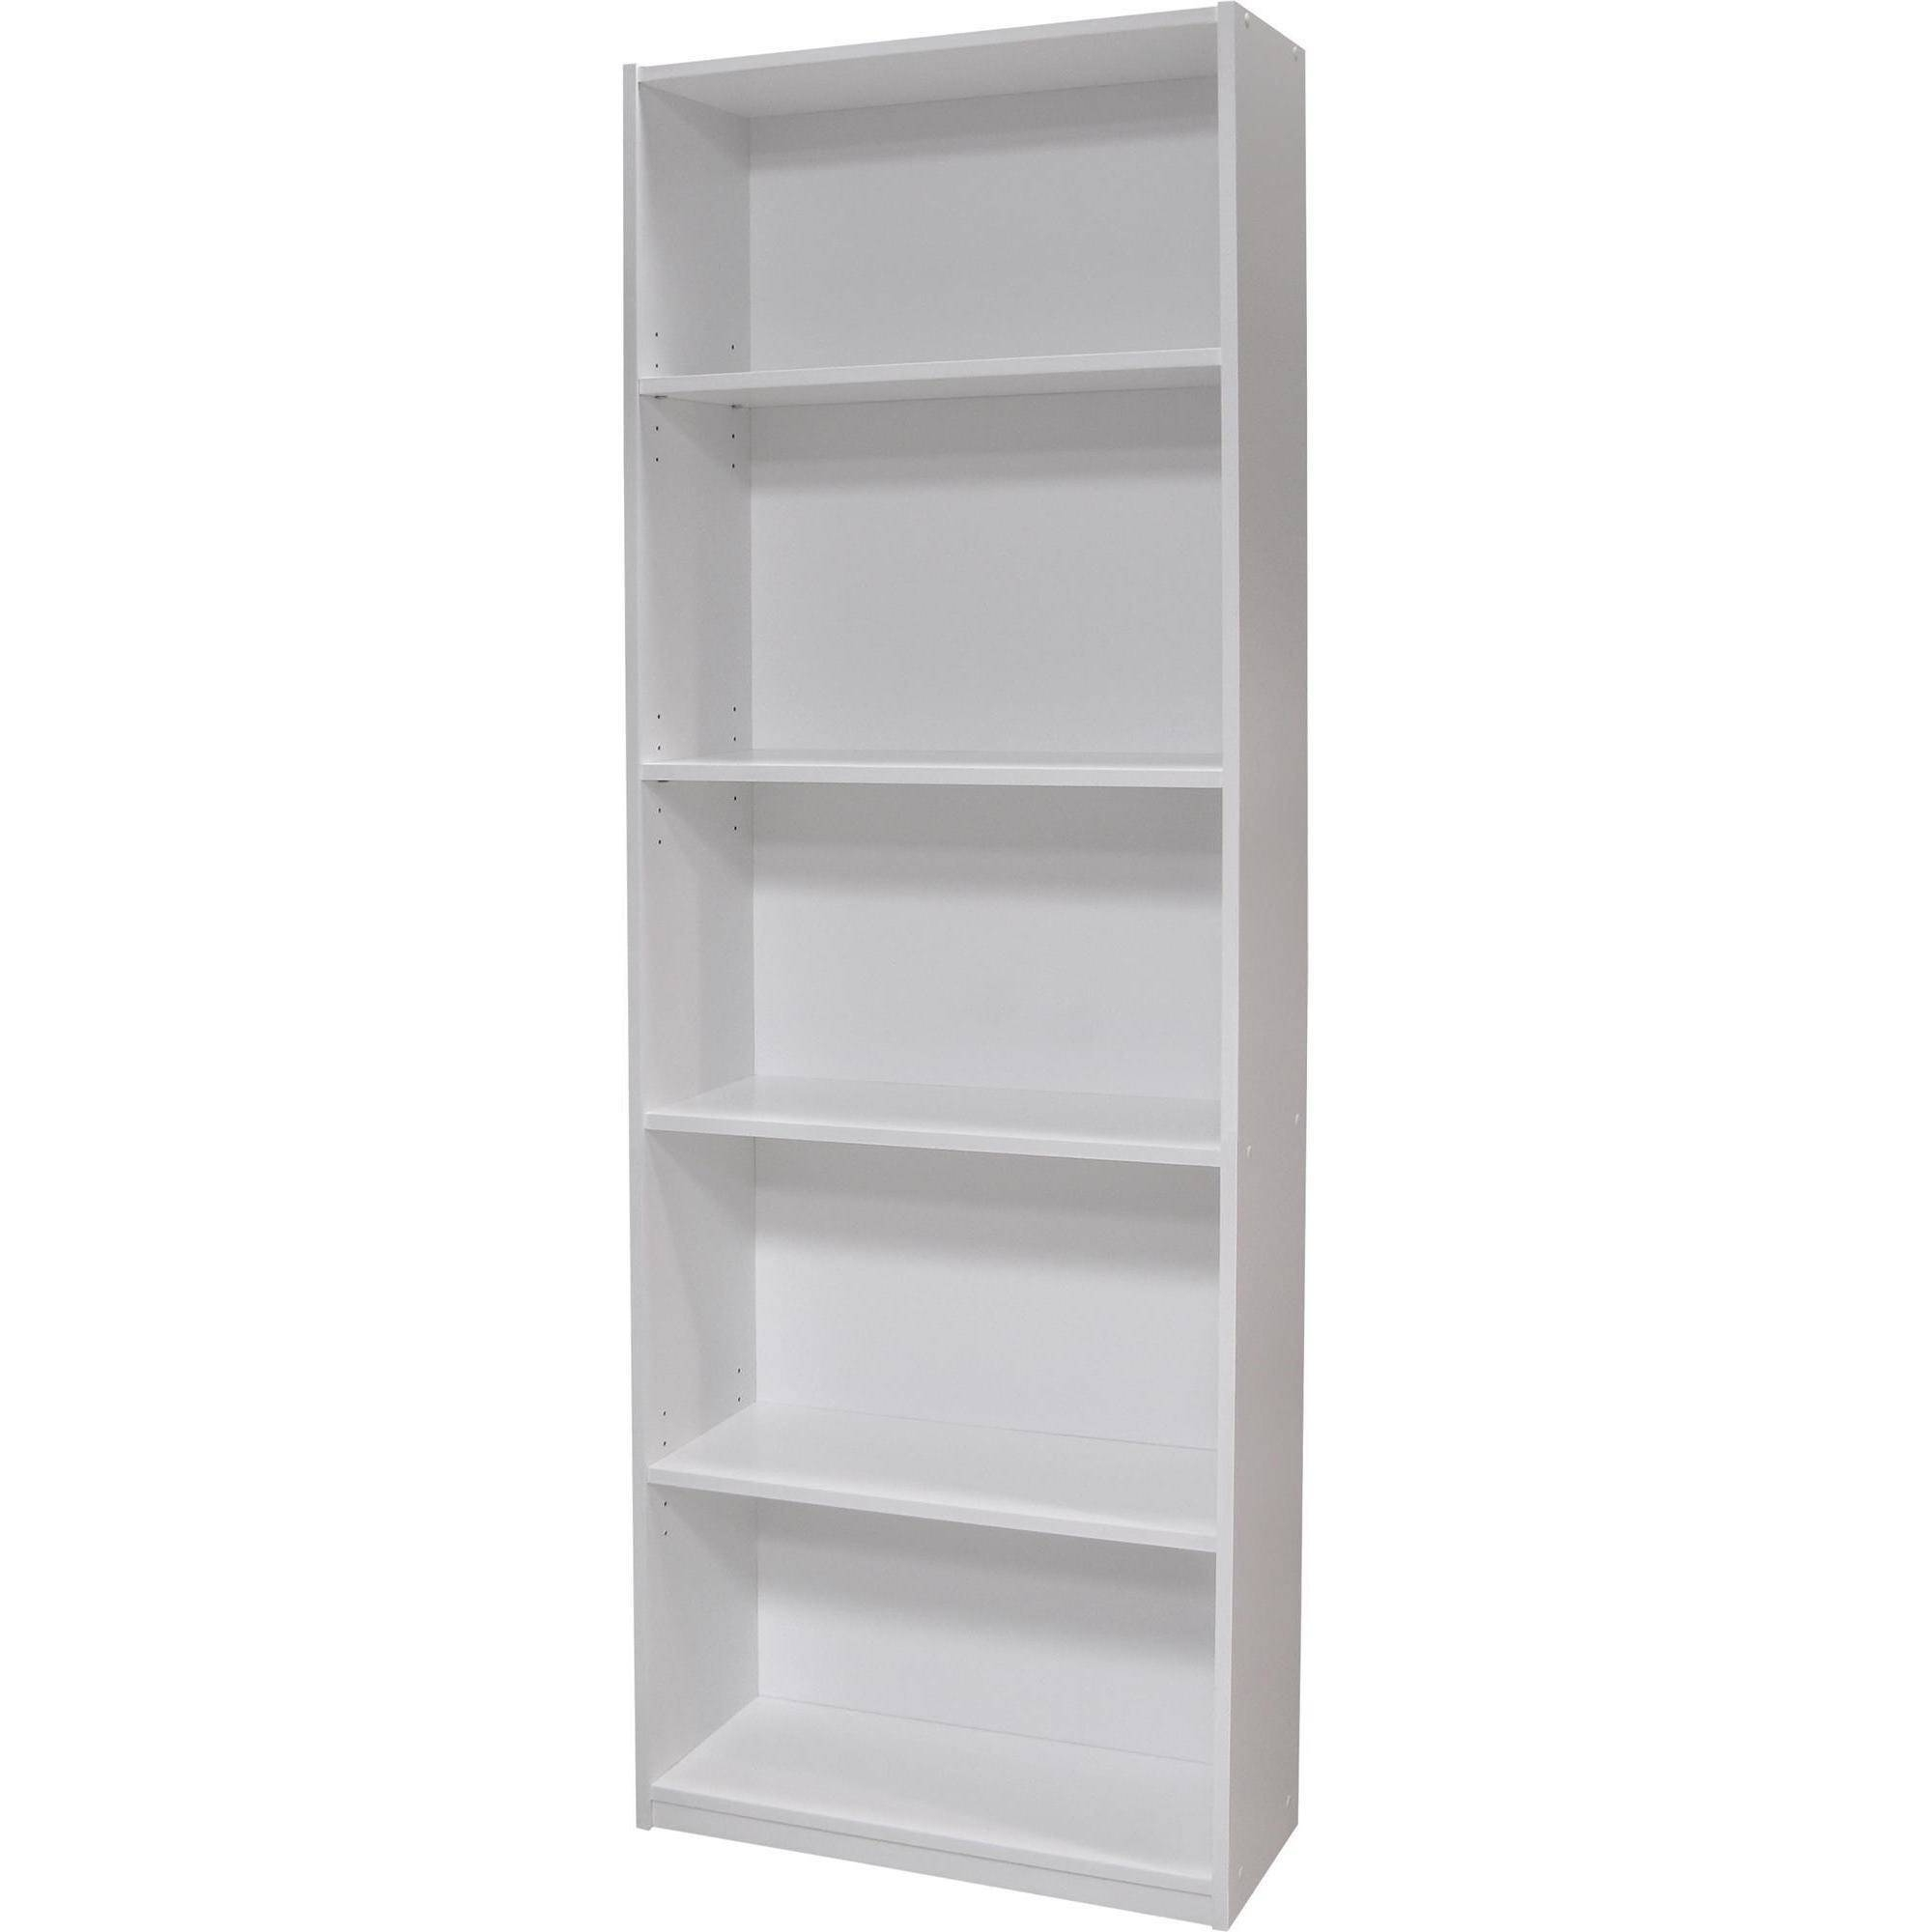 Most Popular Ameriwood 5 Shelf Bookcases, Set Of 2 (Mix And Match) – Walmart In White Walmart Bookcases (View 7 of 15)